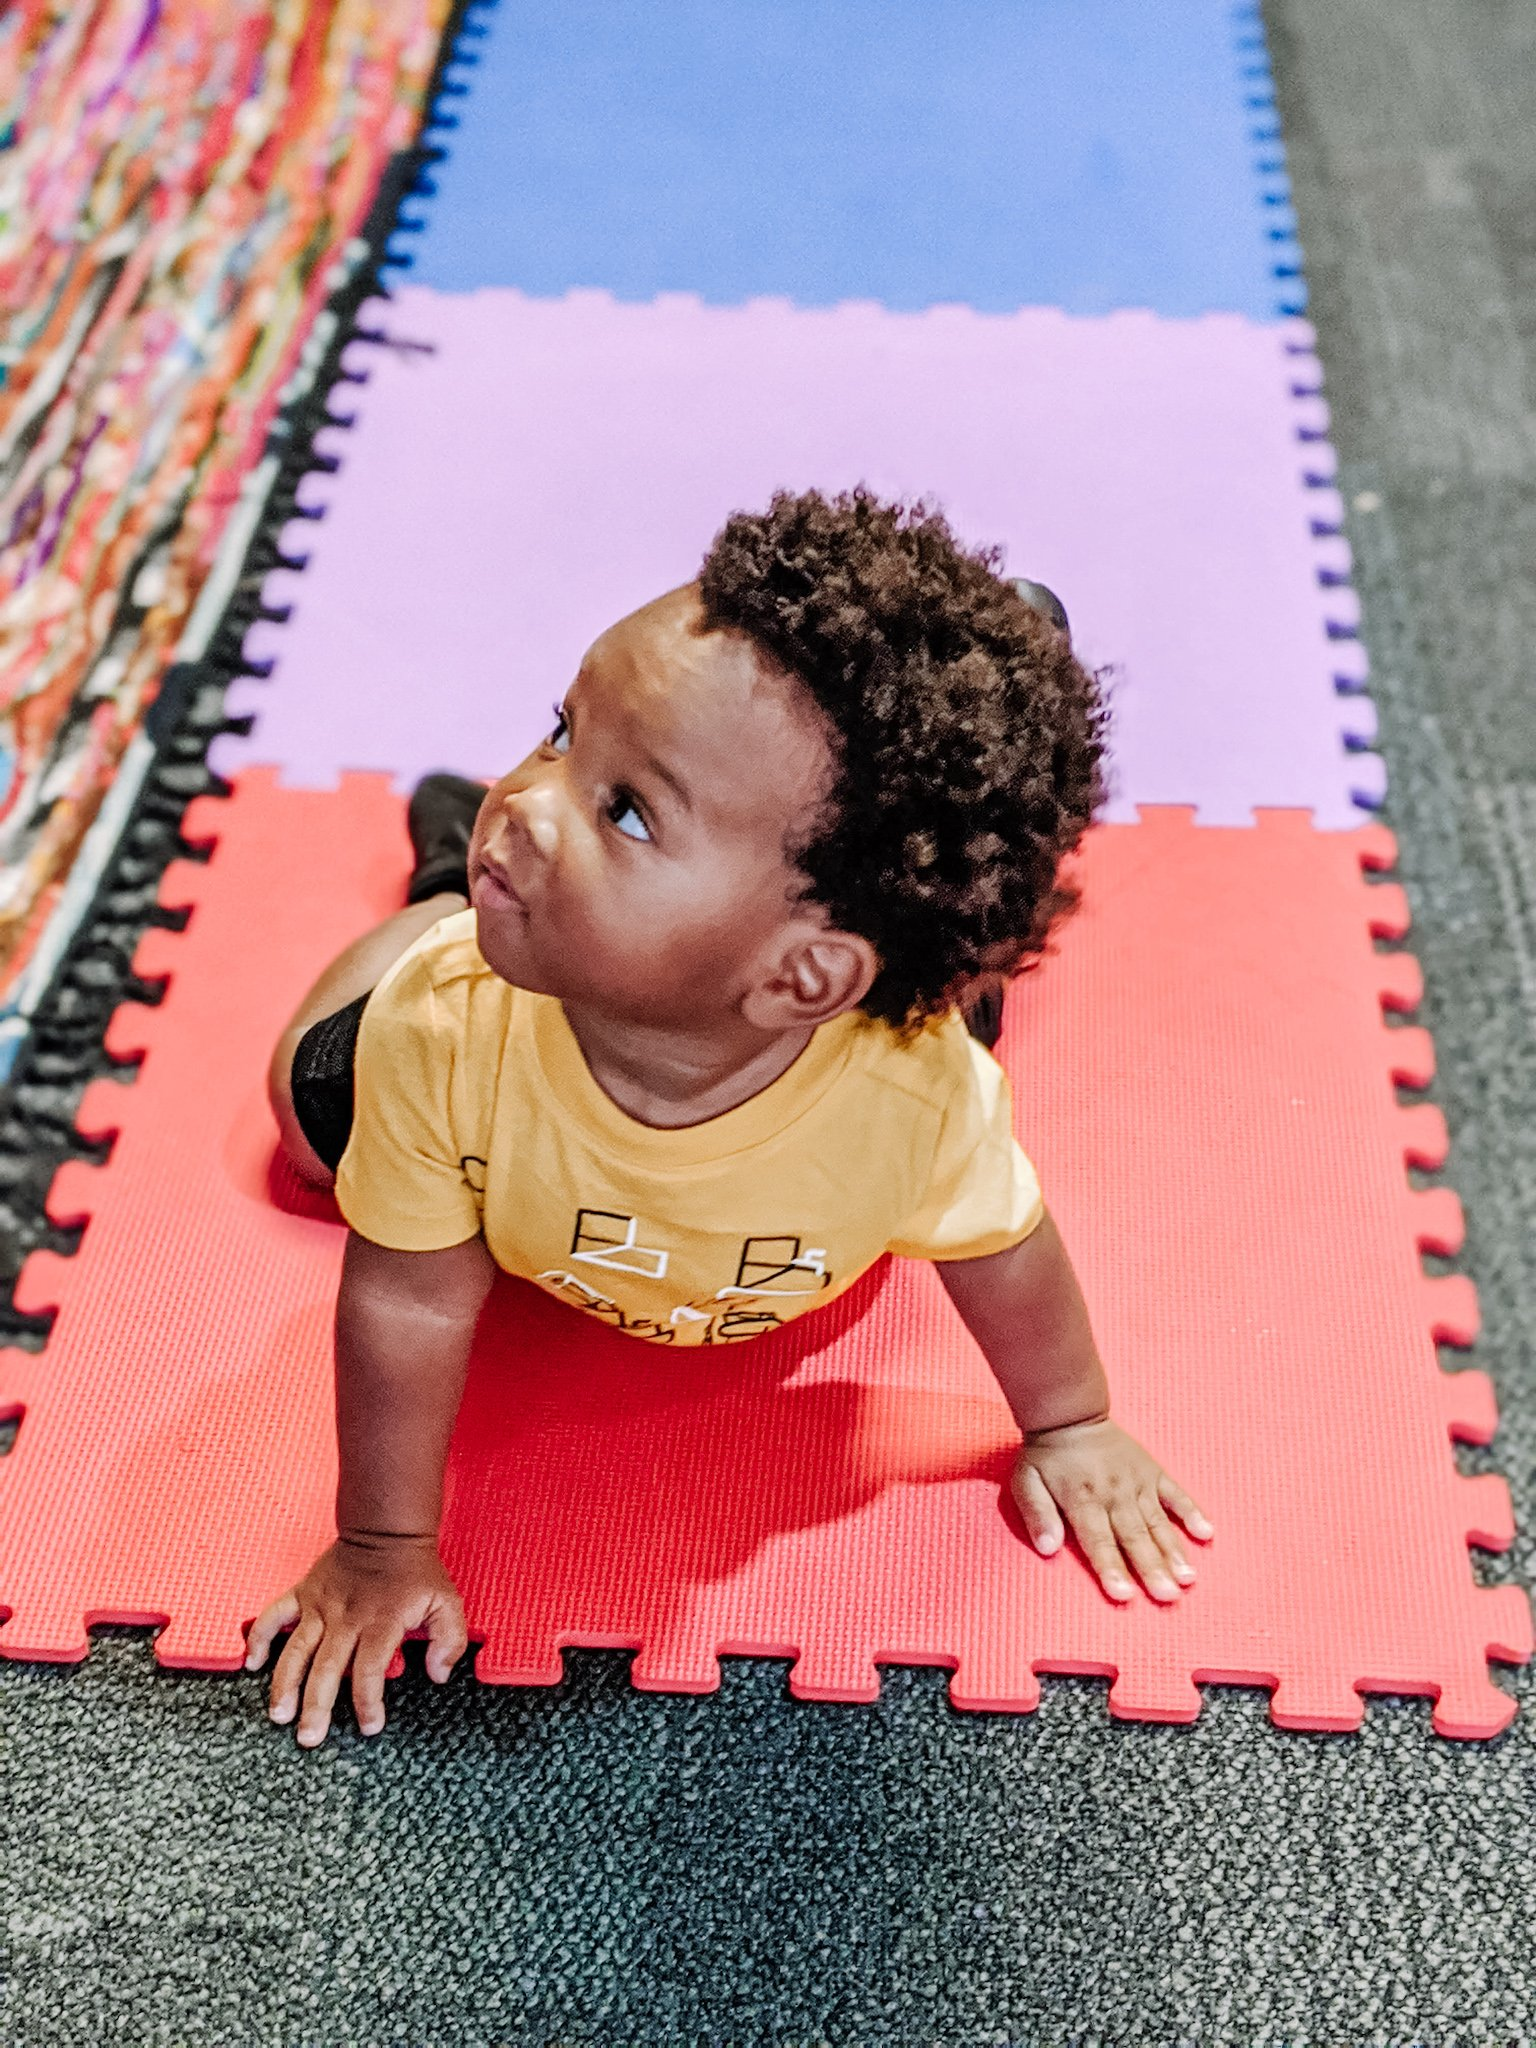 baby crawling on mat at museum